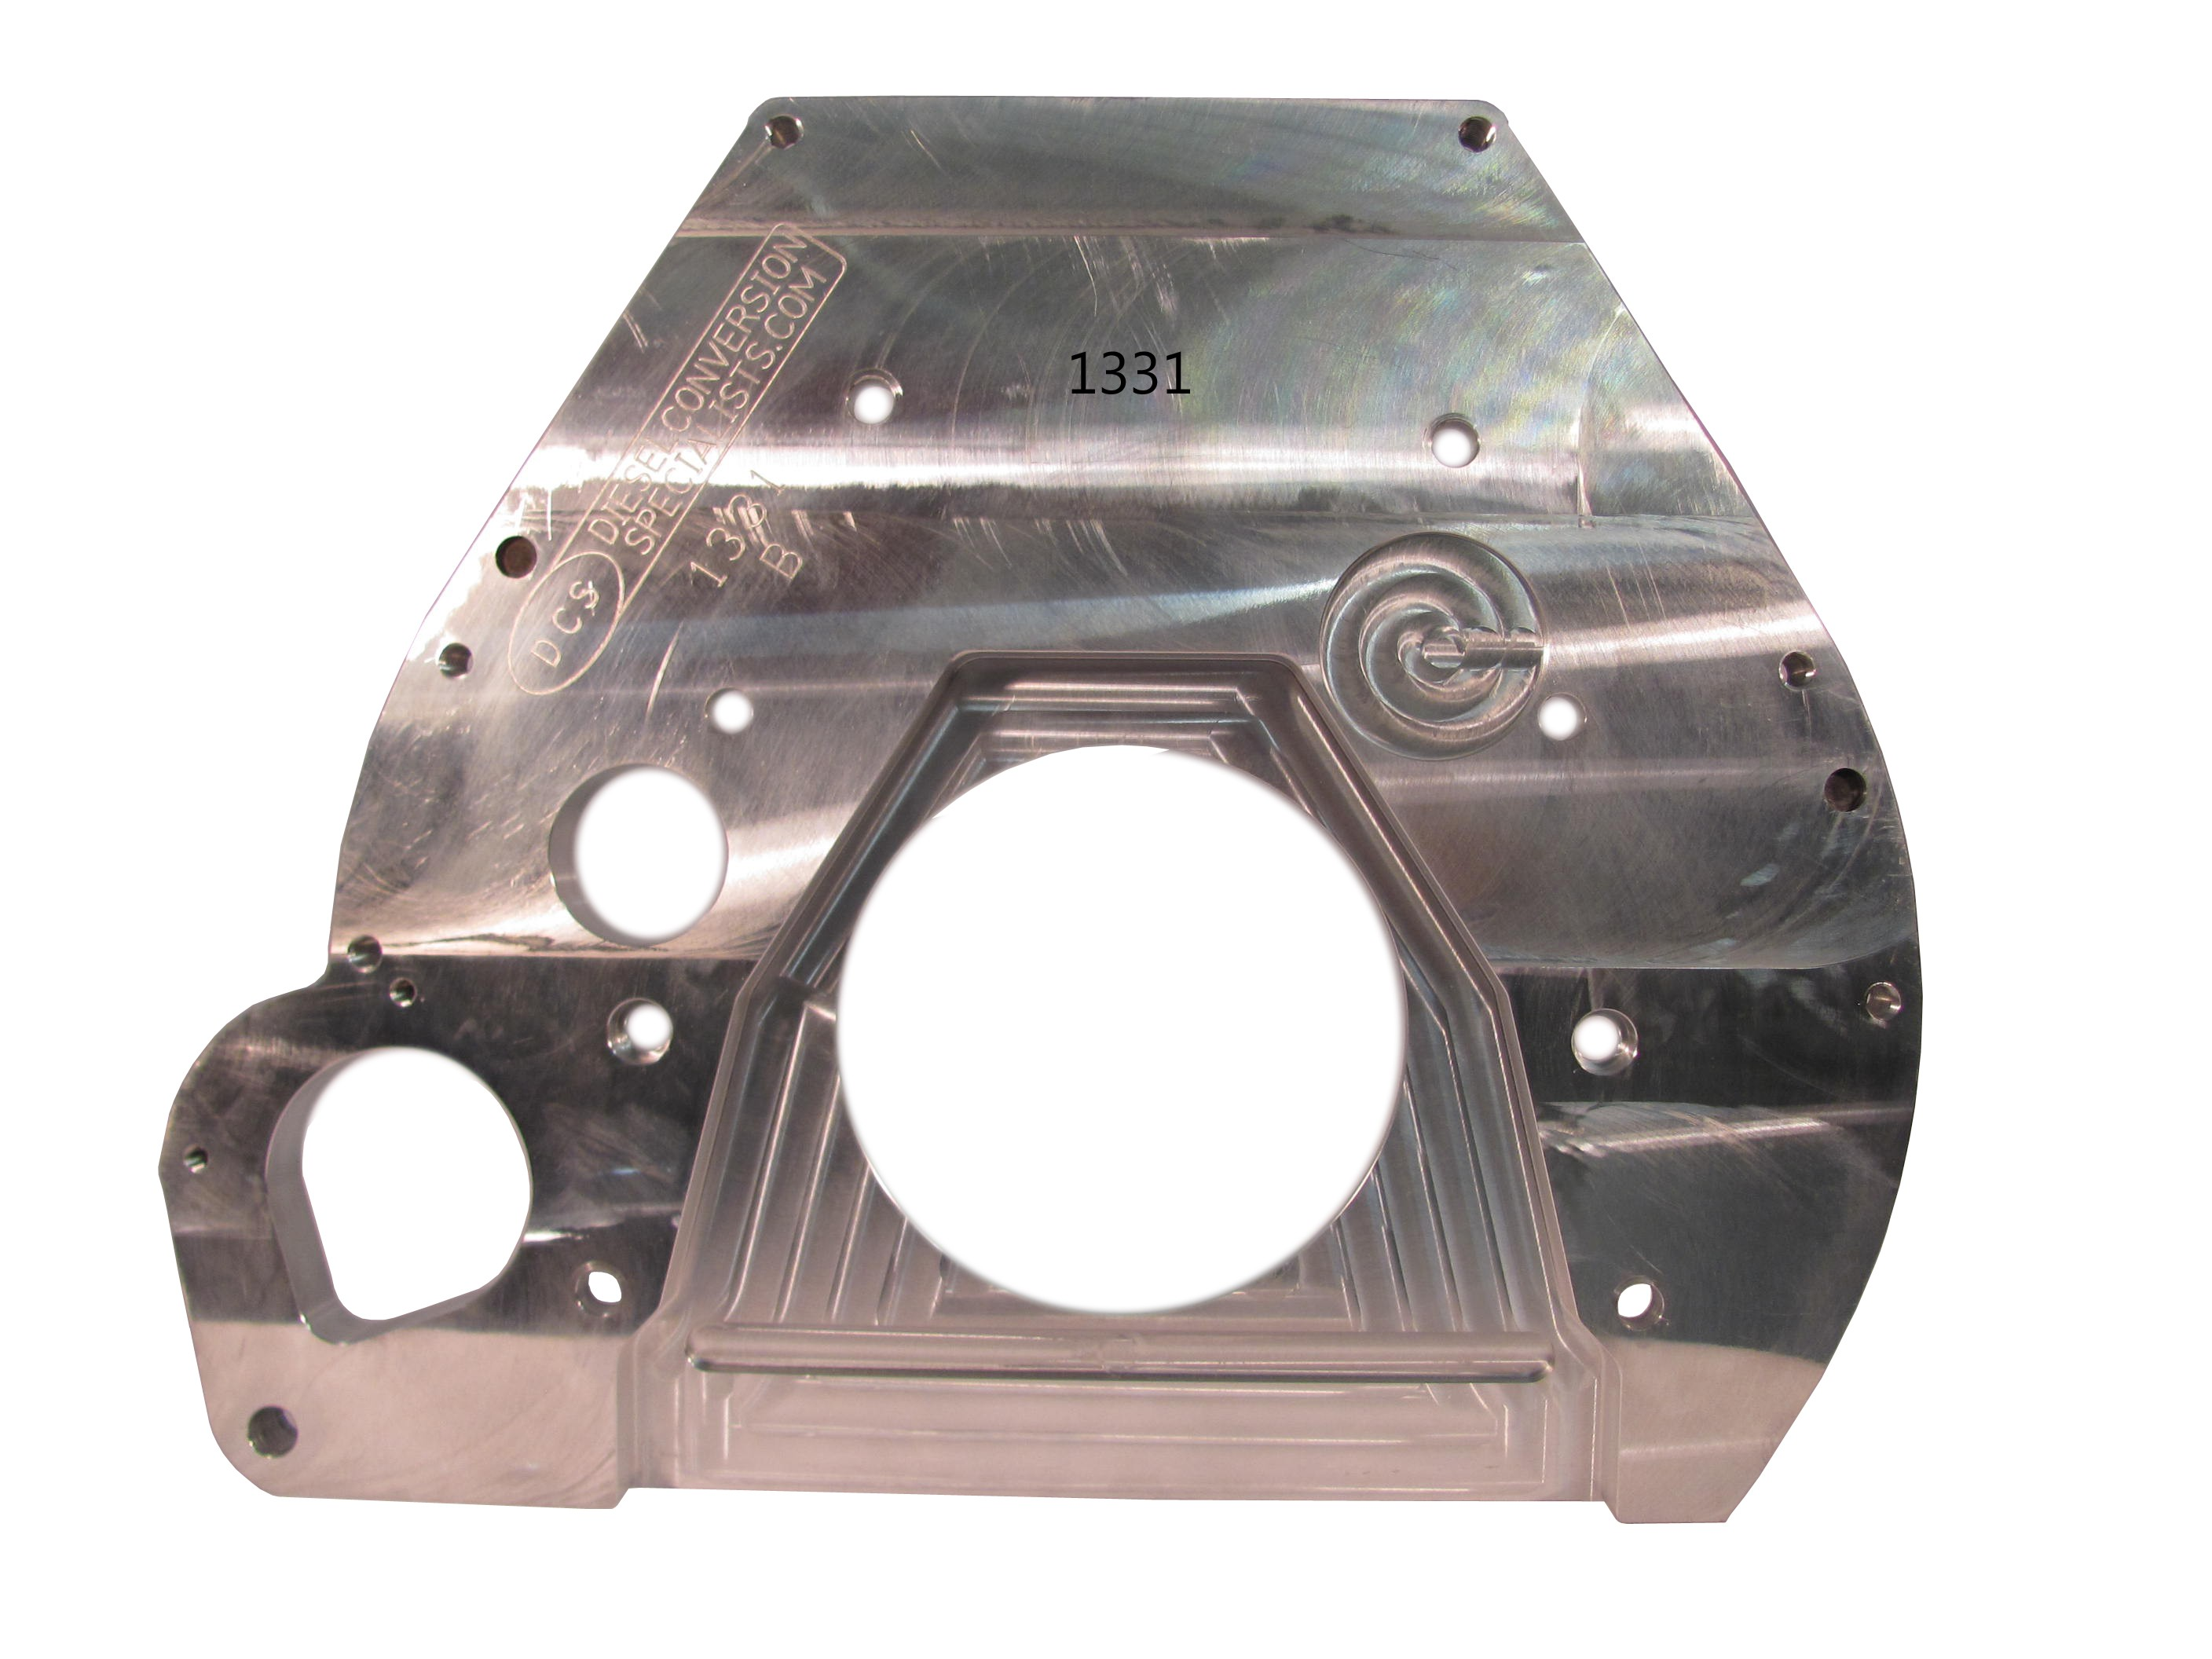 Adapter Plate - 12V/24V to 1987-1997 Ford 460 Gas, ZF-5